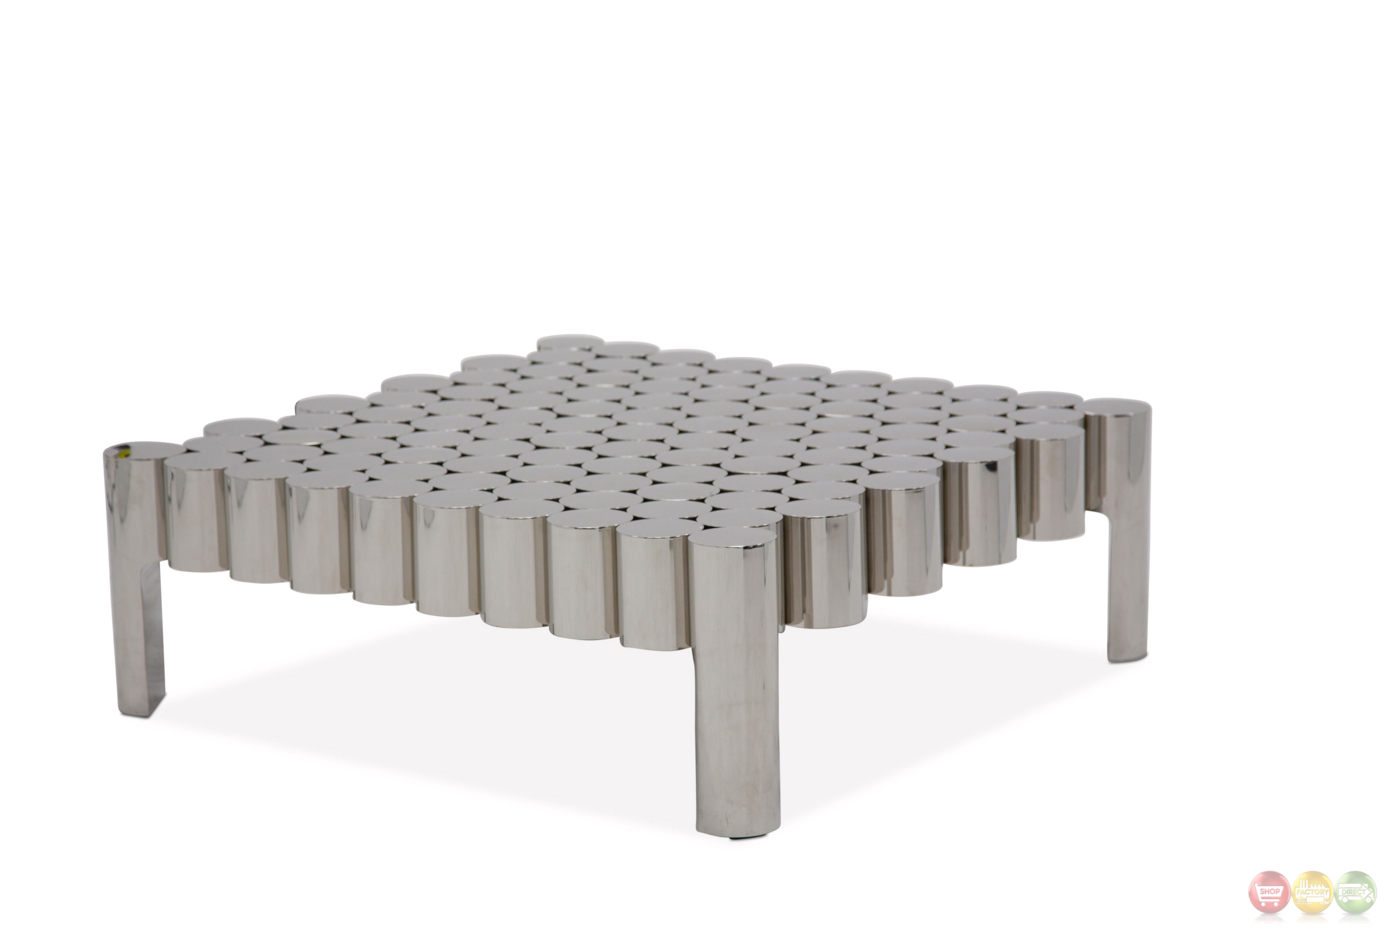 La Tania Ultra Modern Coffee Table In A Silver Stainless Steel Finish